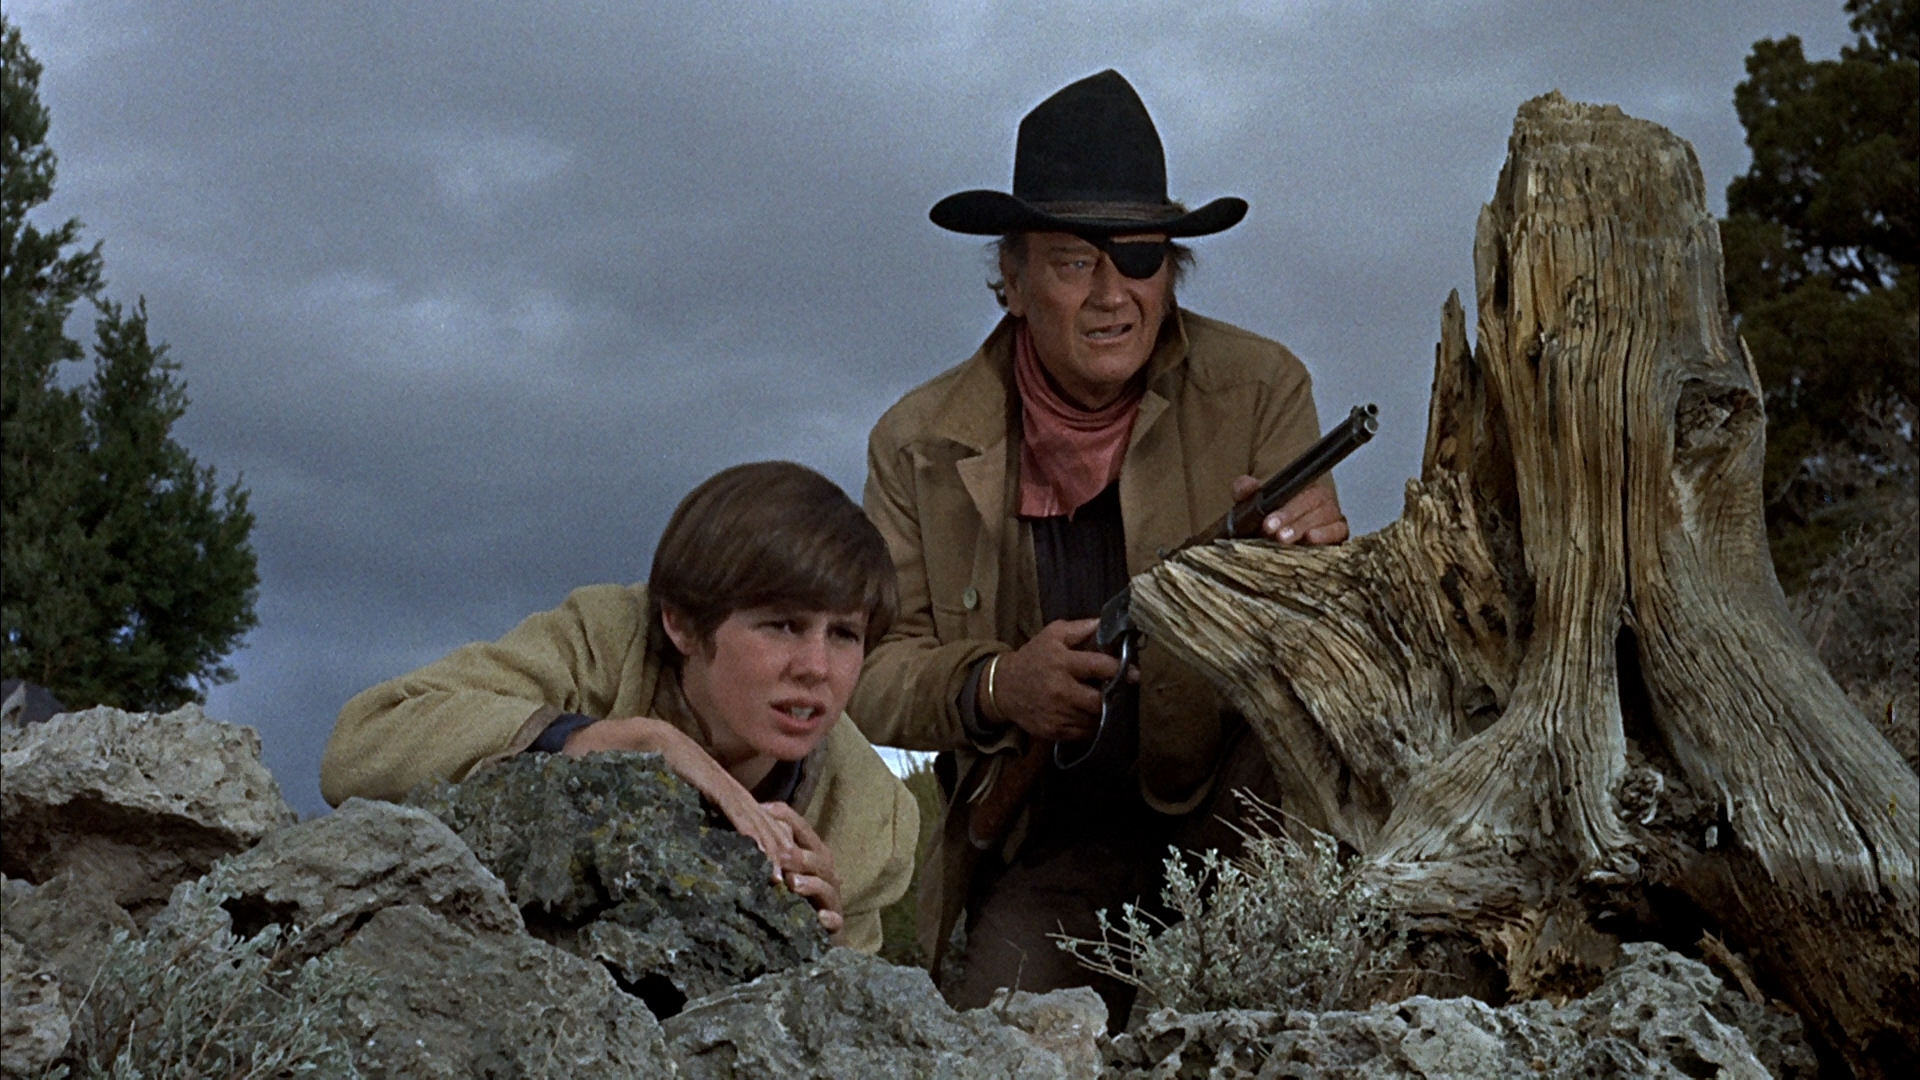 Saddle up with HDNET MOVIES Christmas Day, TRUE GRIT two-pack ...